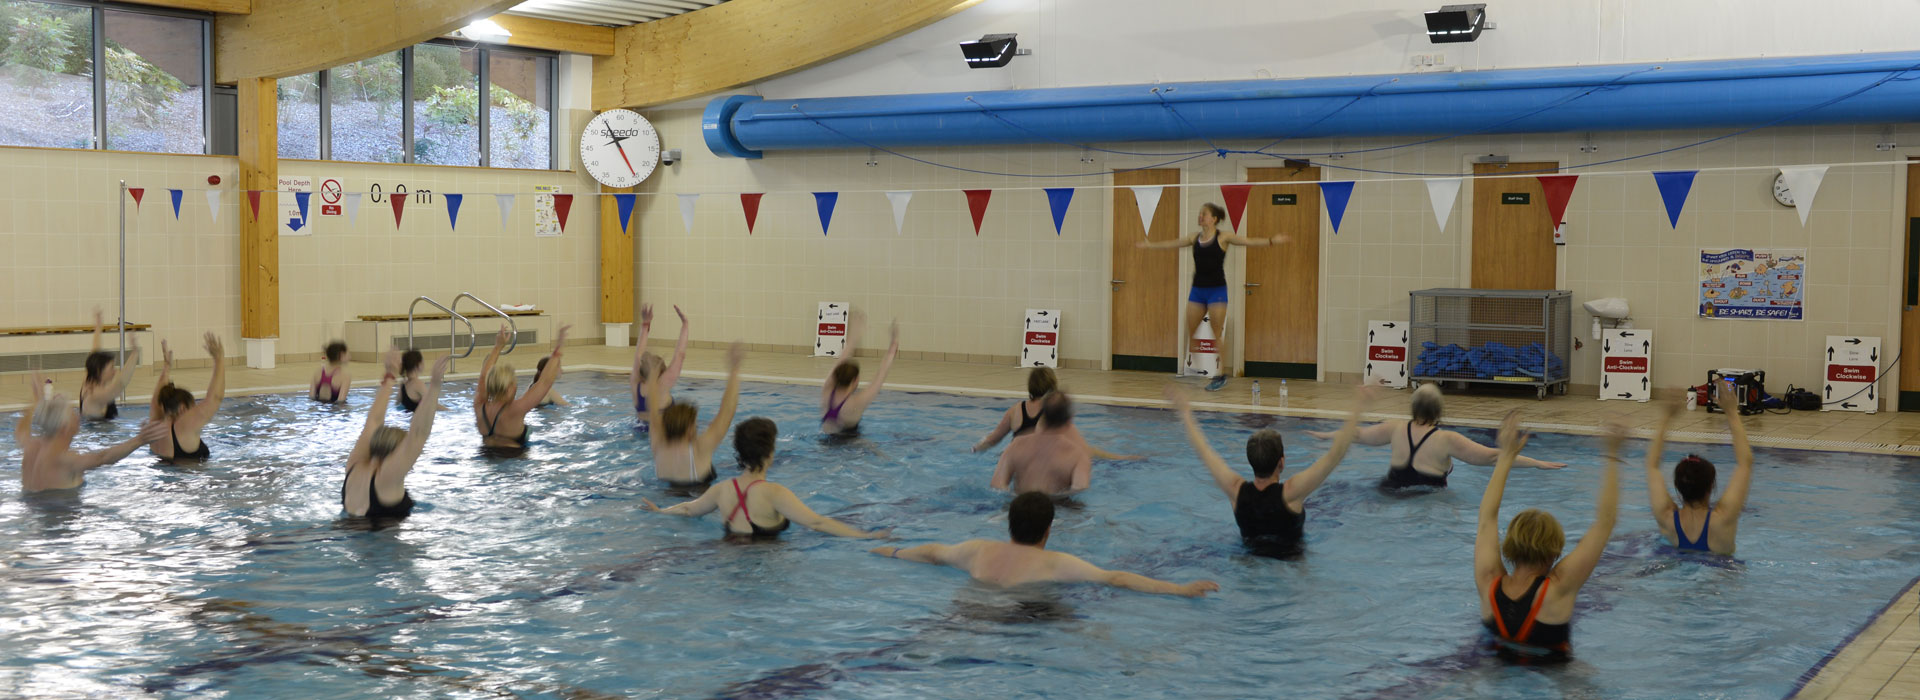 Aqua Fit at Malvern Active